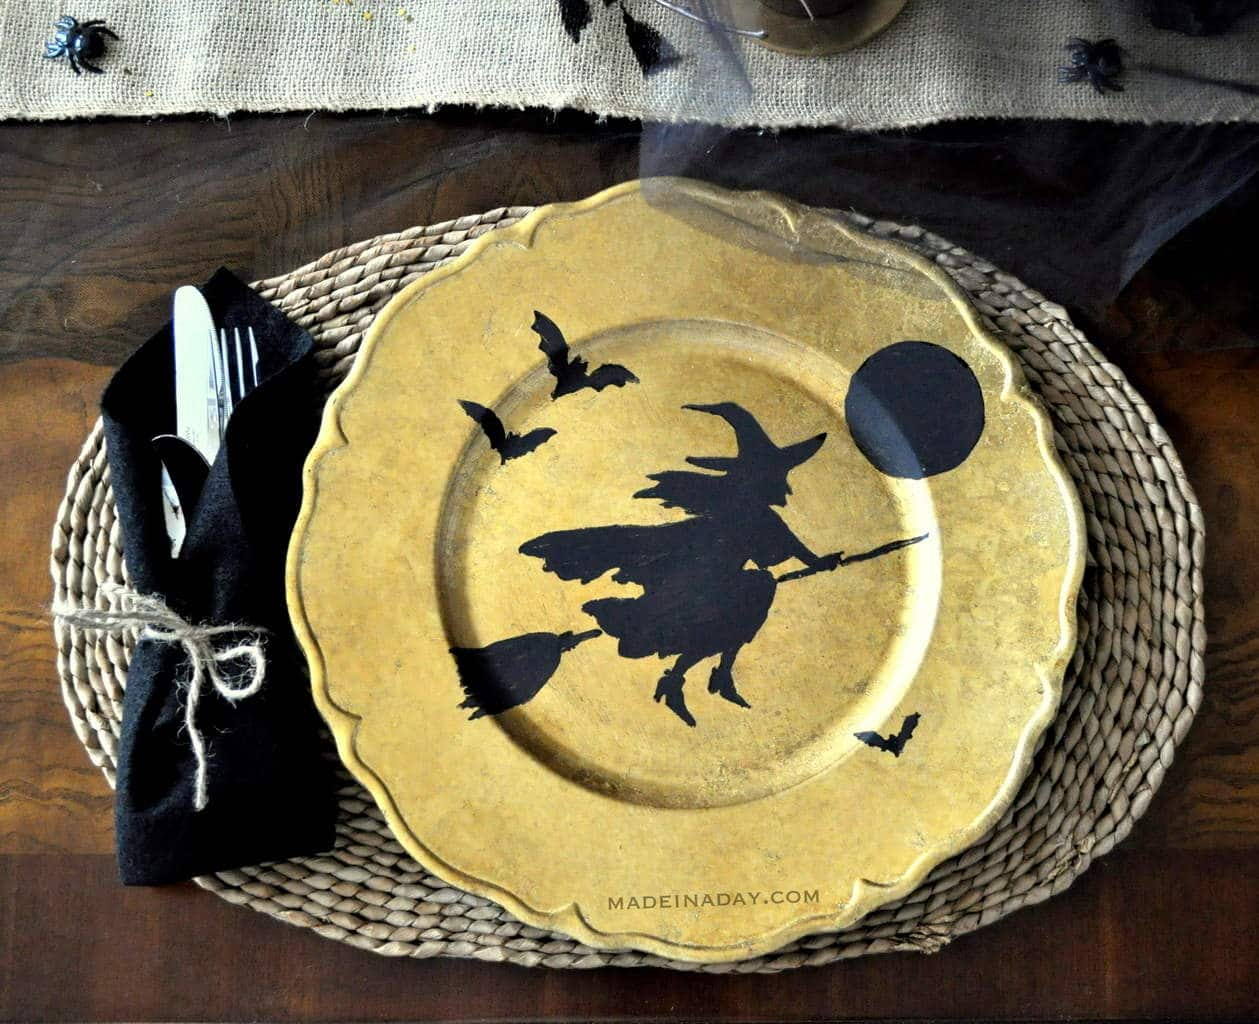 Flying Broom Witch Halloween Plate Charger madeinaday.com